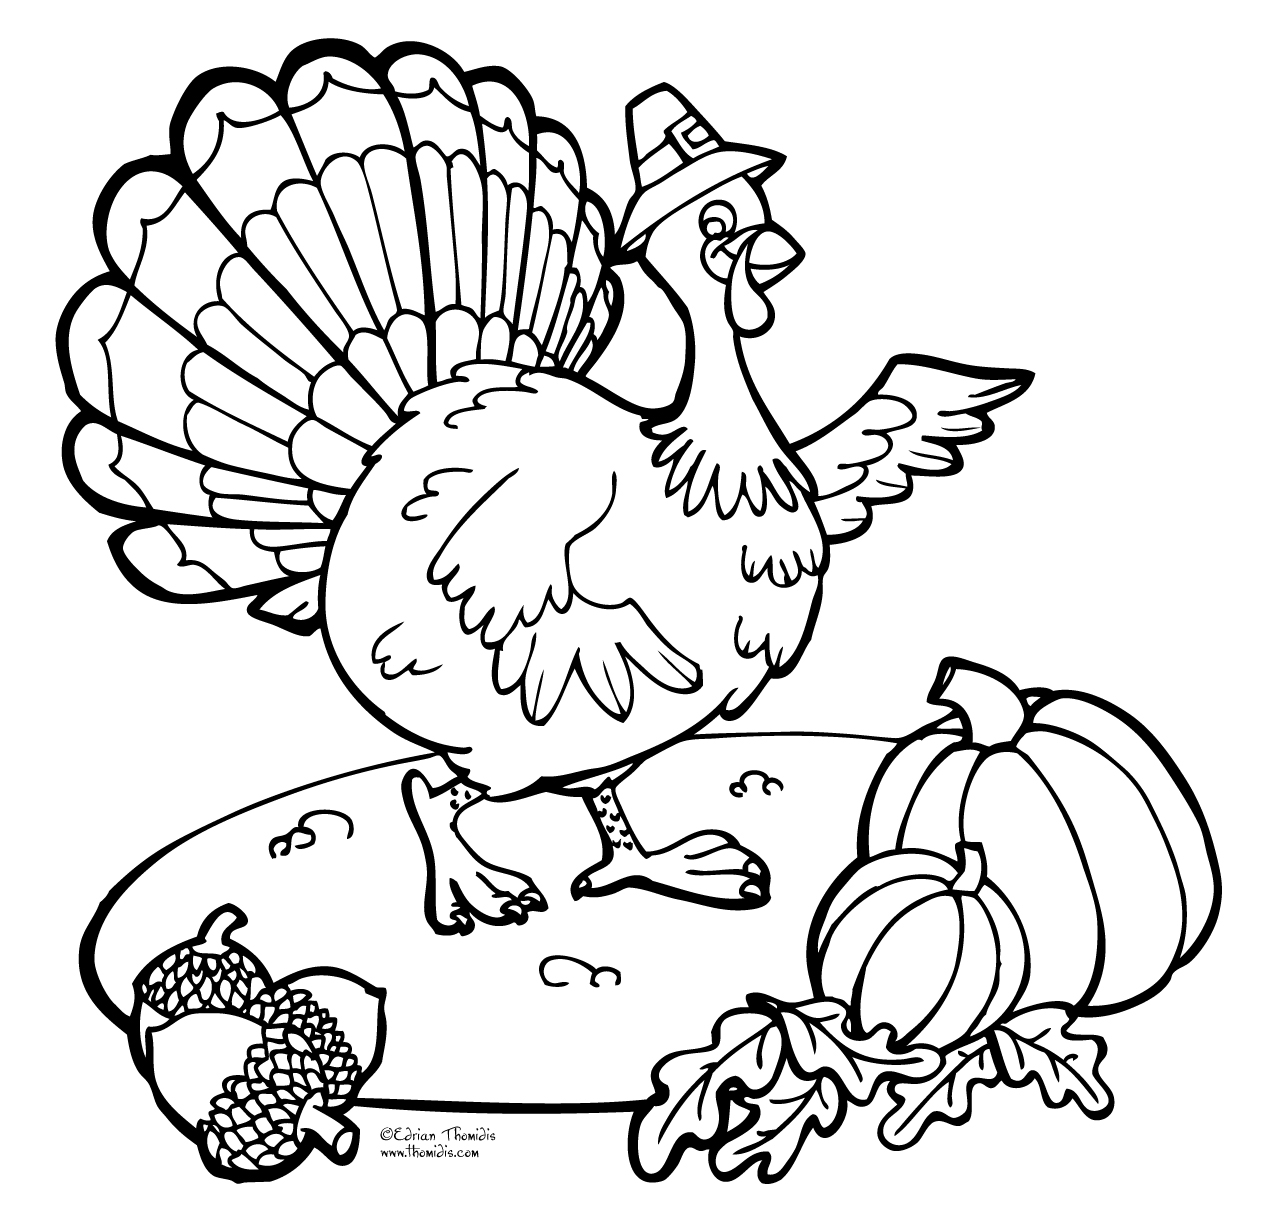 tanksgiving coloring pages - photo#11